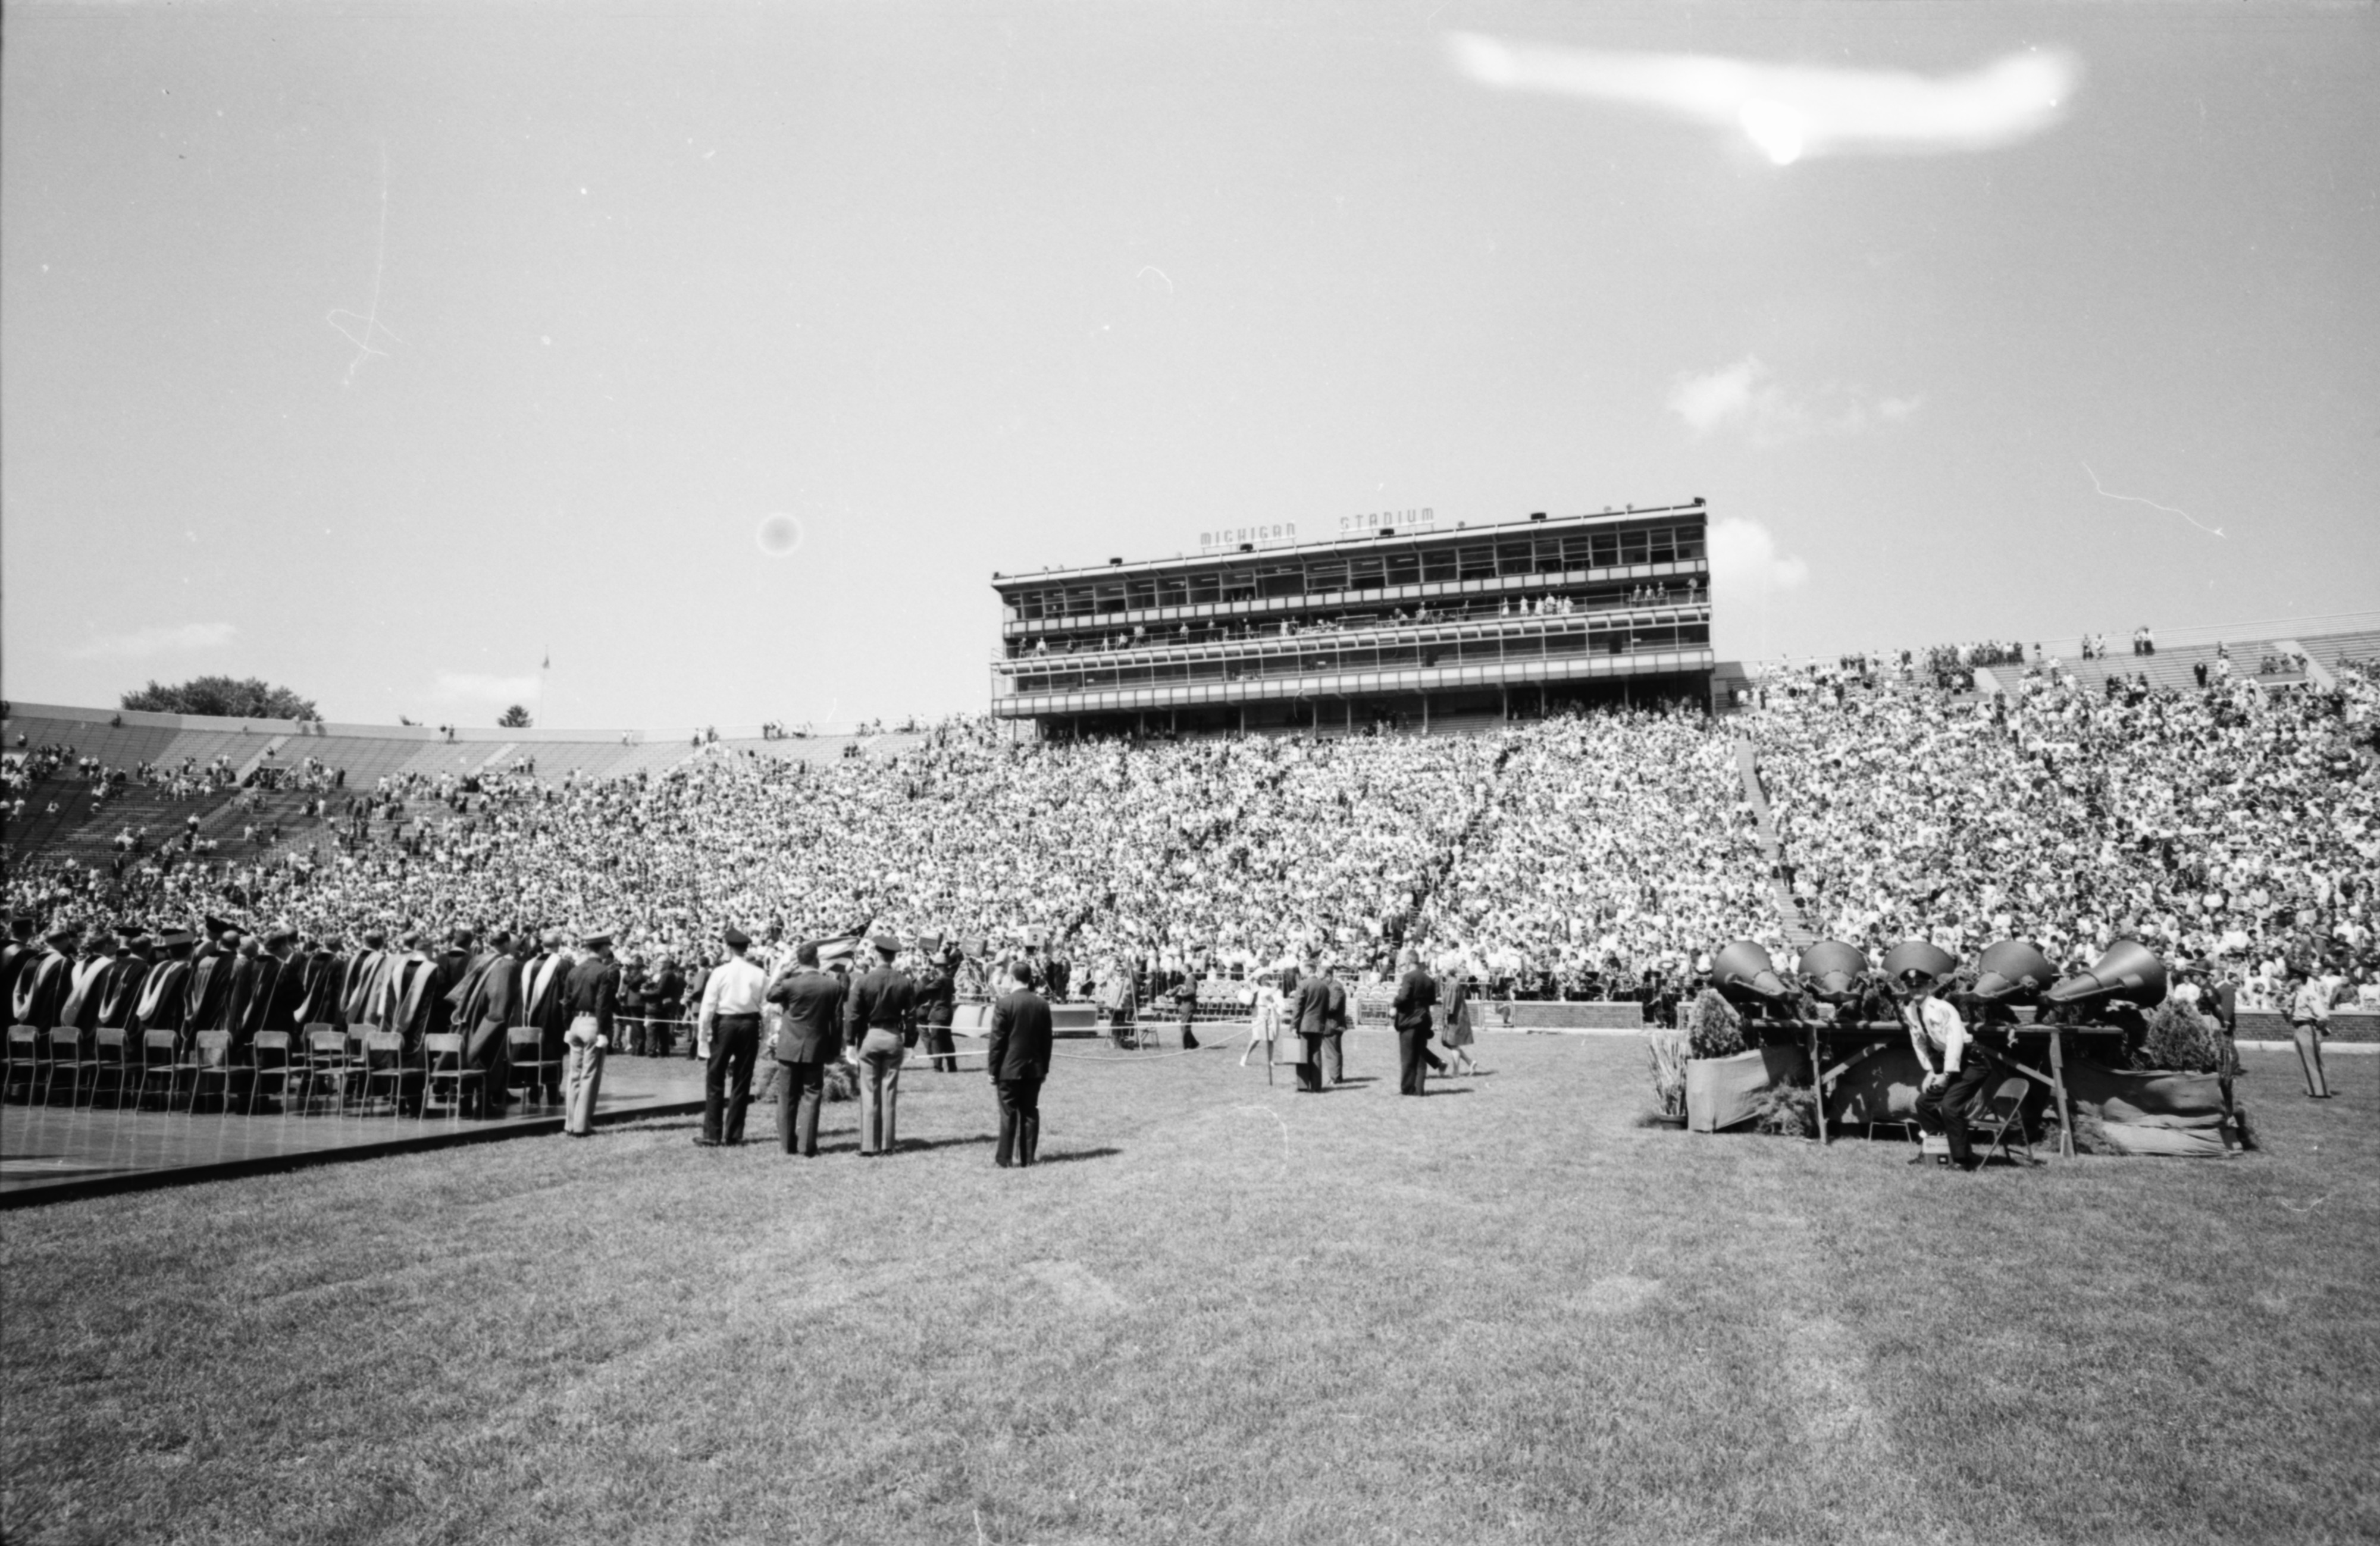 Convocation at Michigan Stadium Honoring Astronauts James A. McDivitt and Edward H. White II, June 1965 image